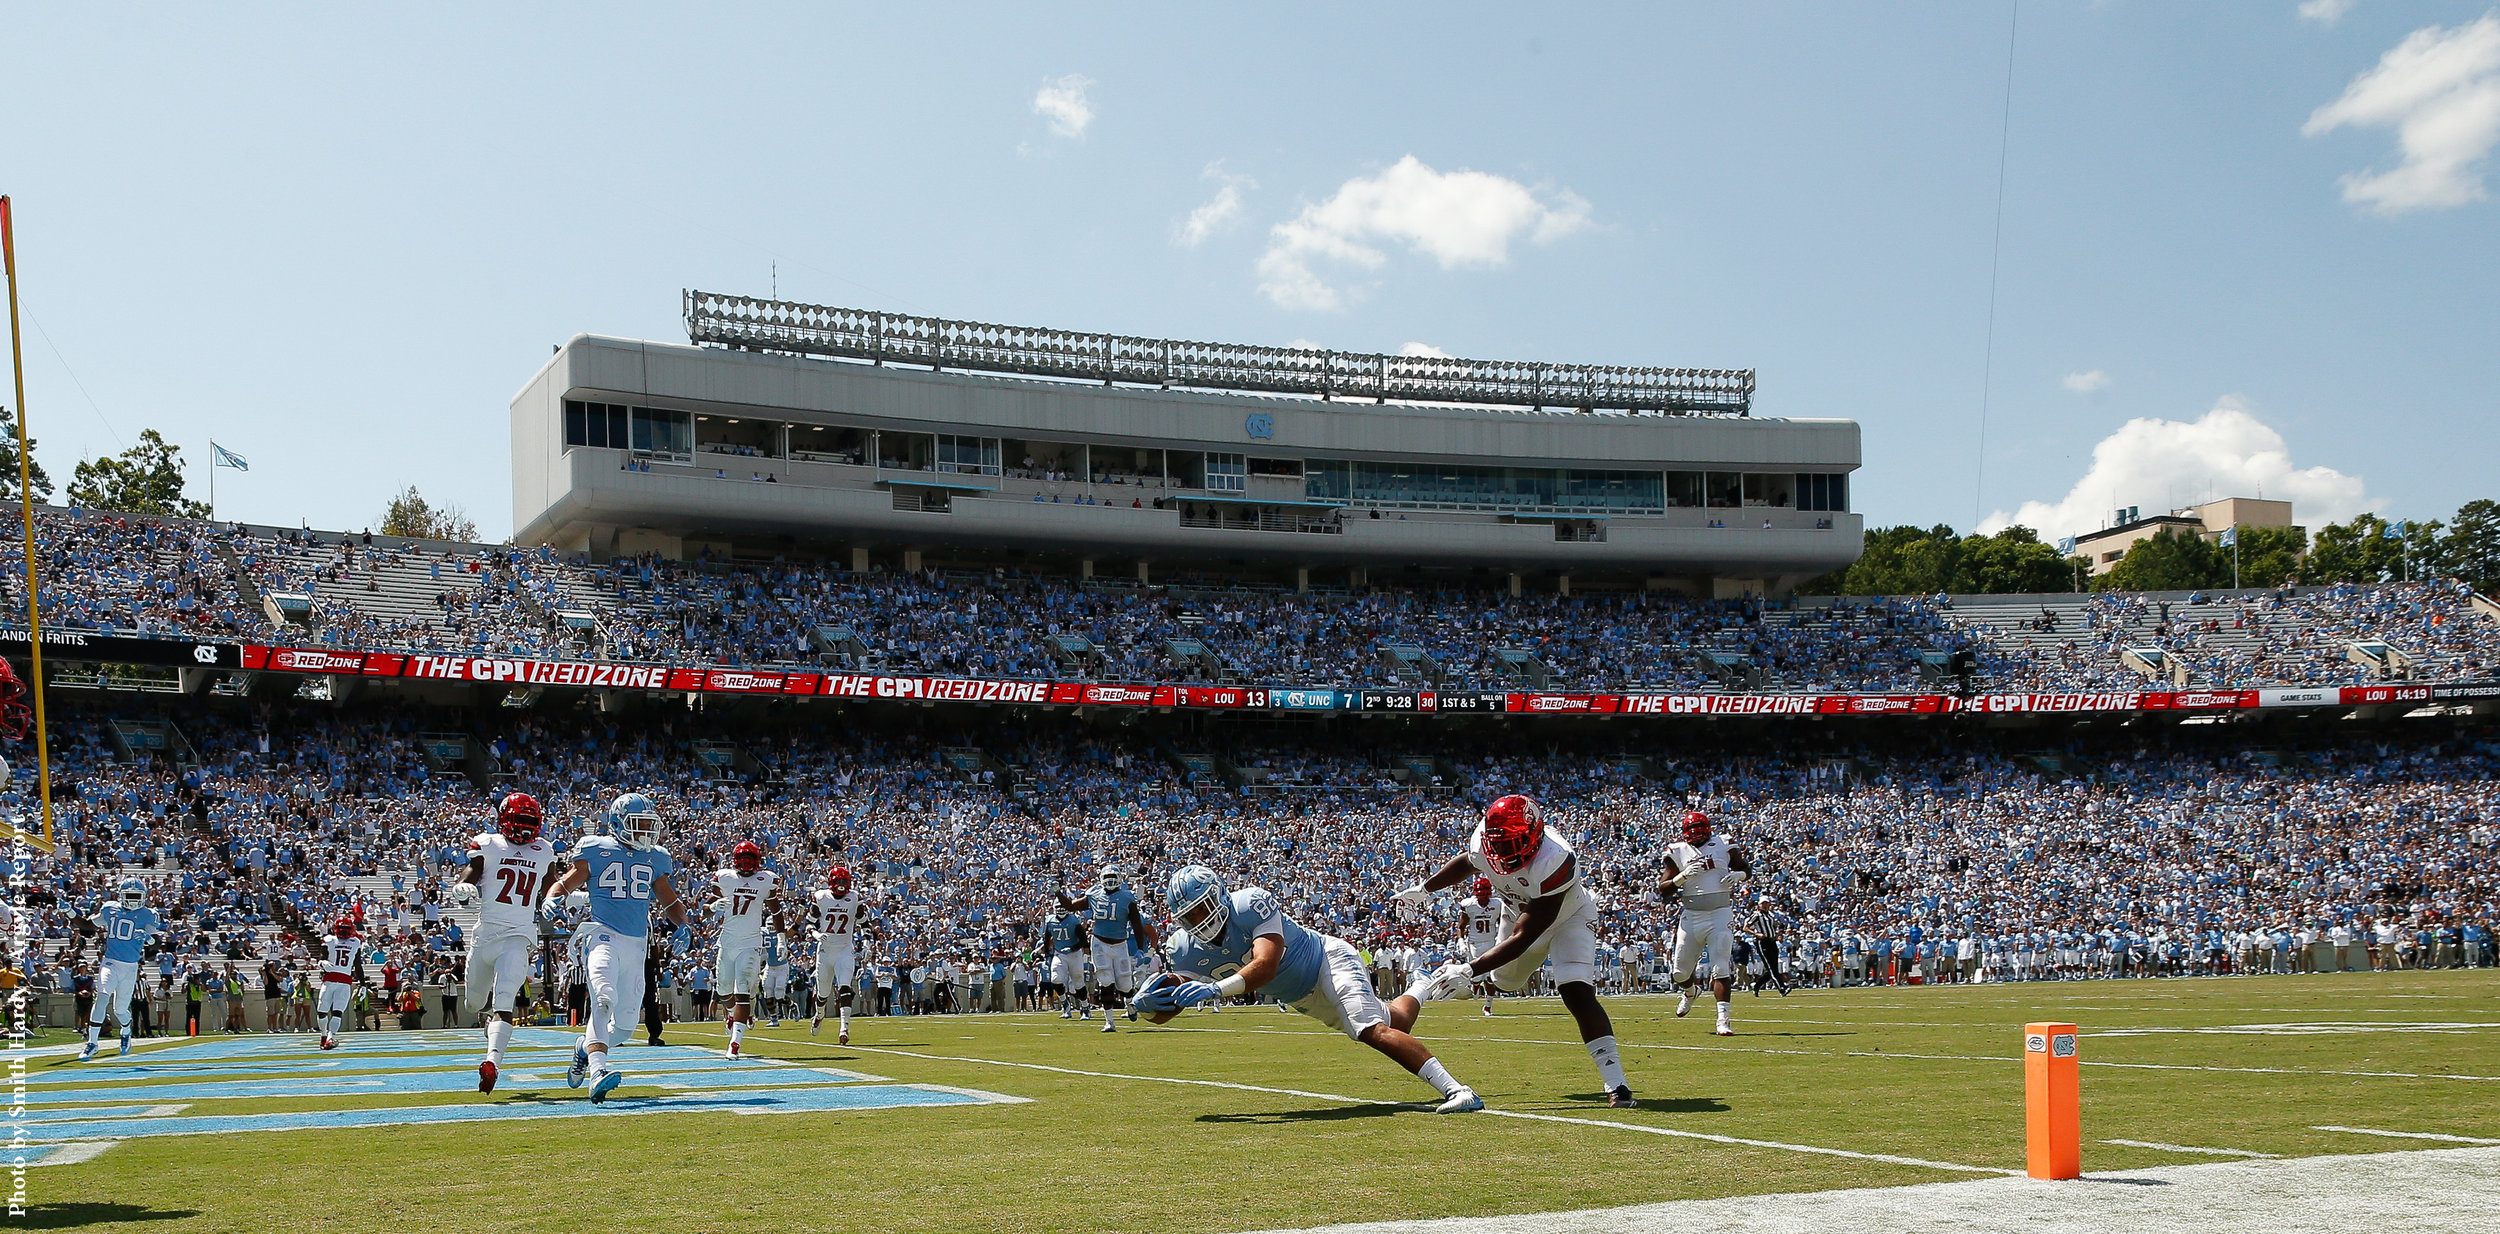 Tarheels vs Cards Football 2017 (25 of 25).jpg